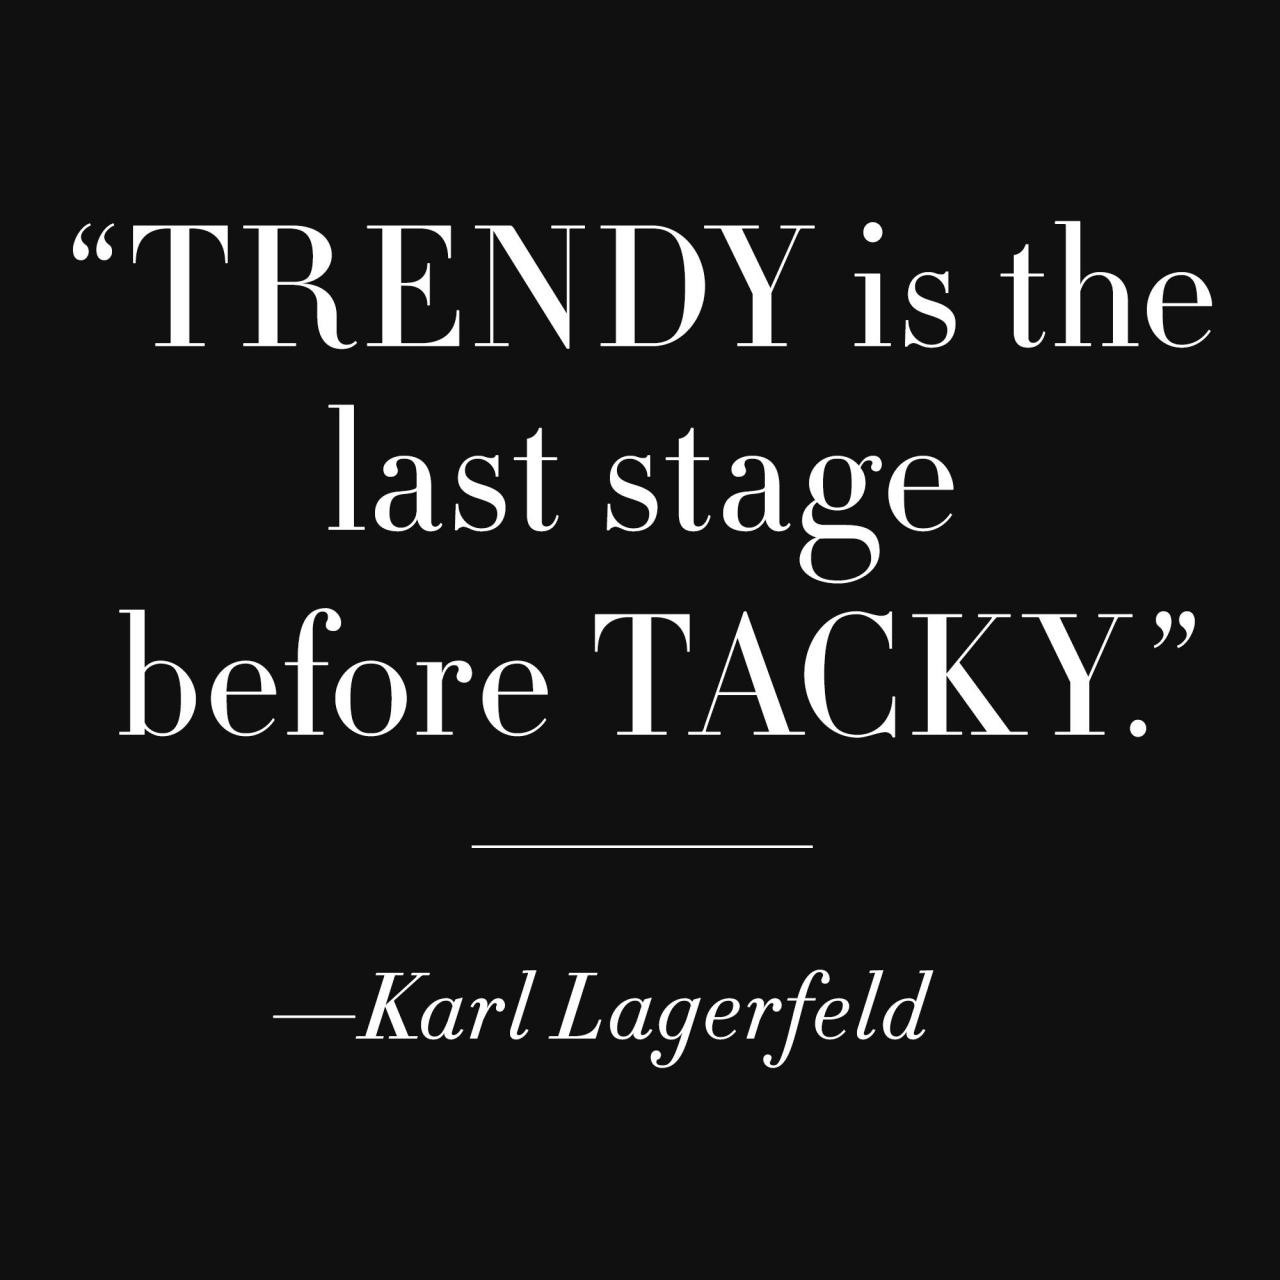 Famous Fashion Quotes From Karl Lagerfeld Coco Chanel Diana Vreeland Famous Fashion Quotes